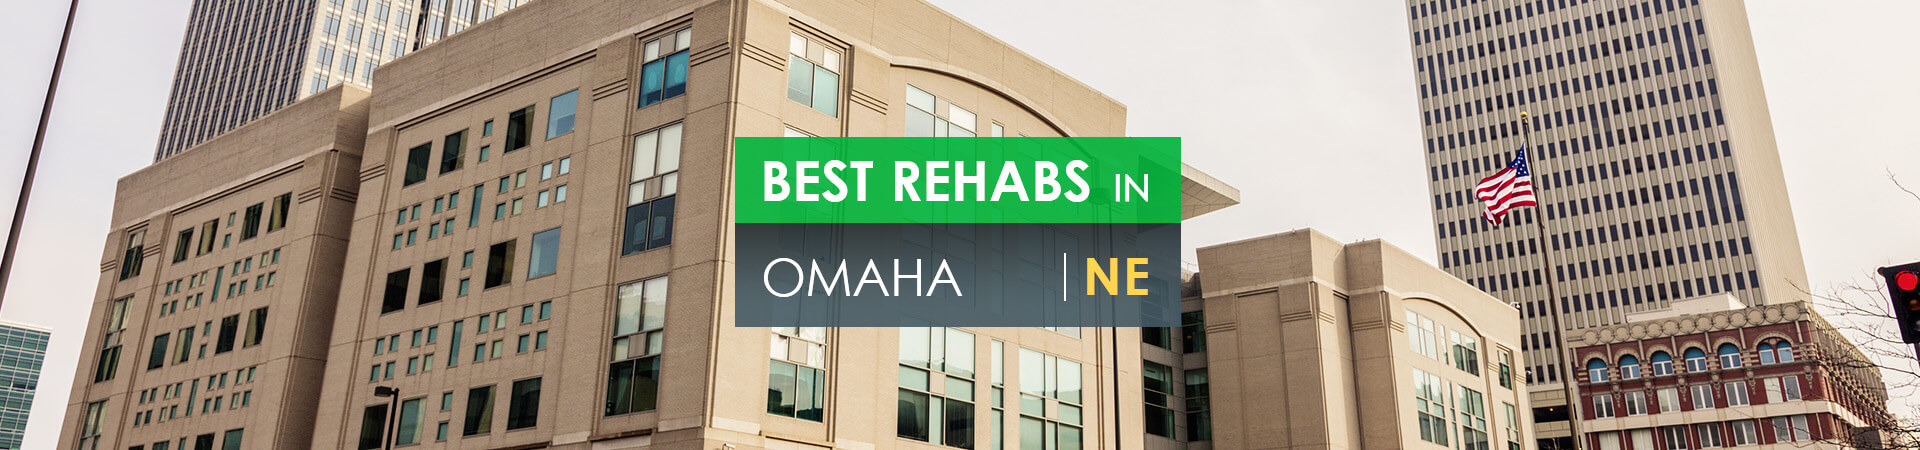 Best rehabs in Omaha, NE